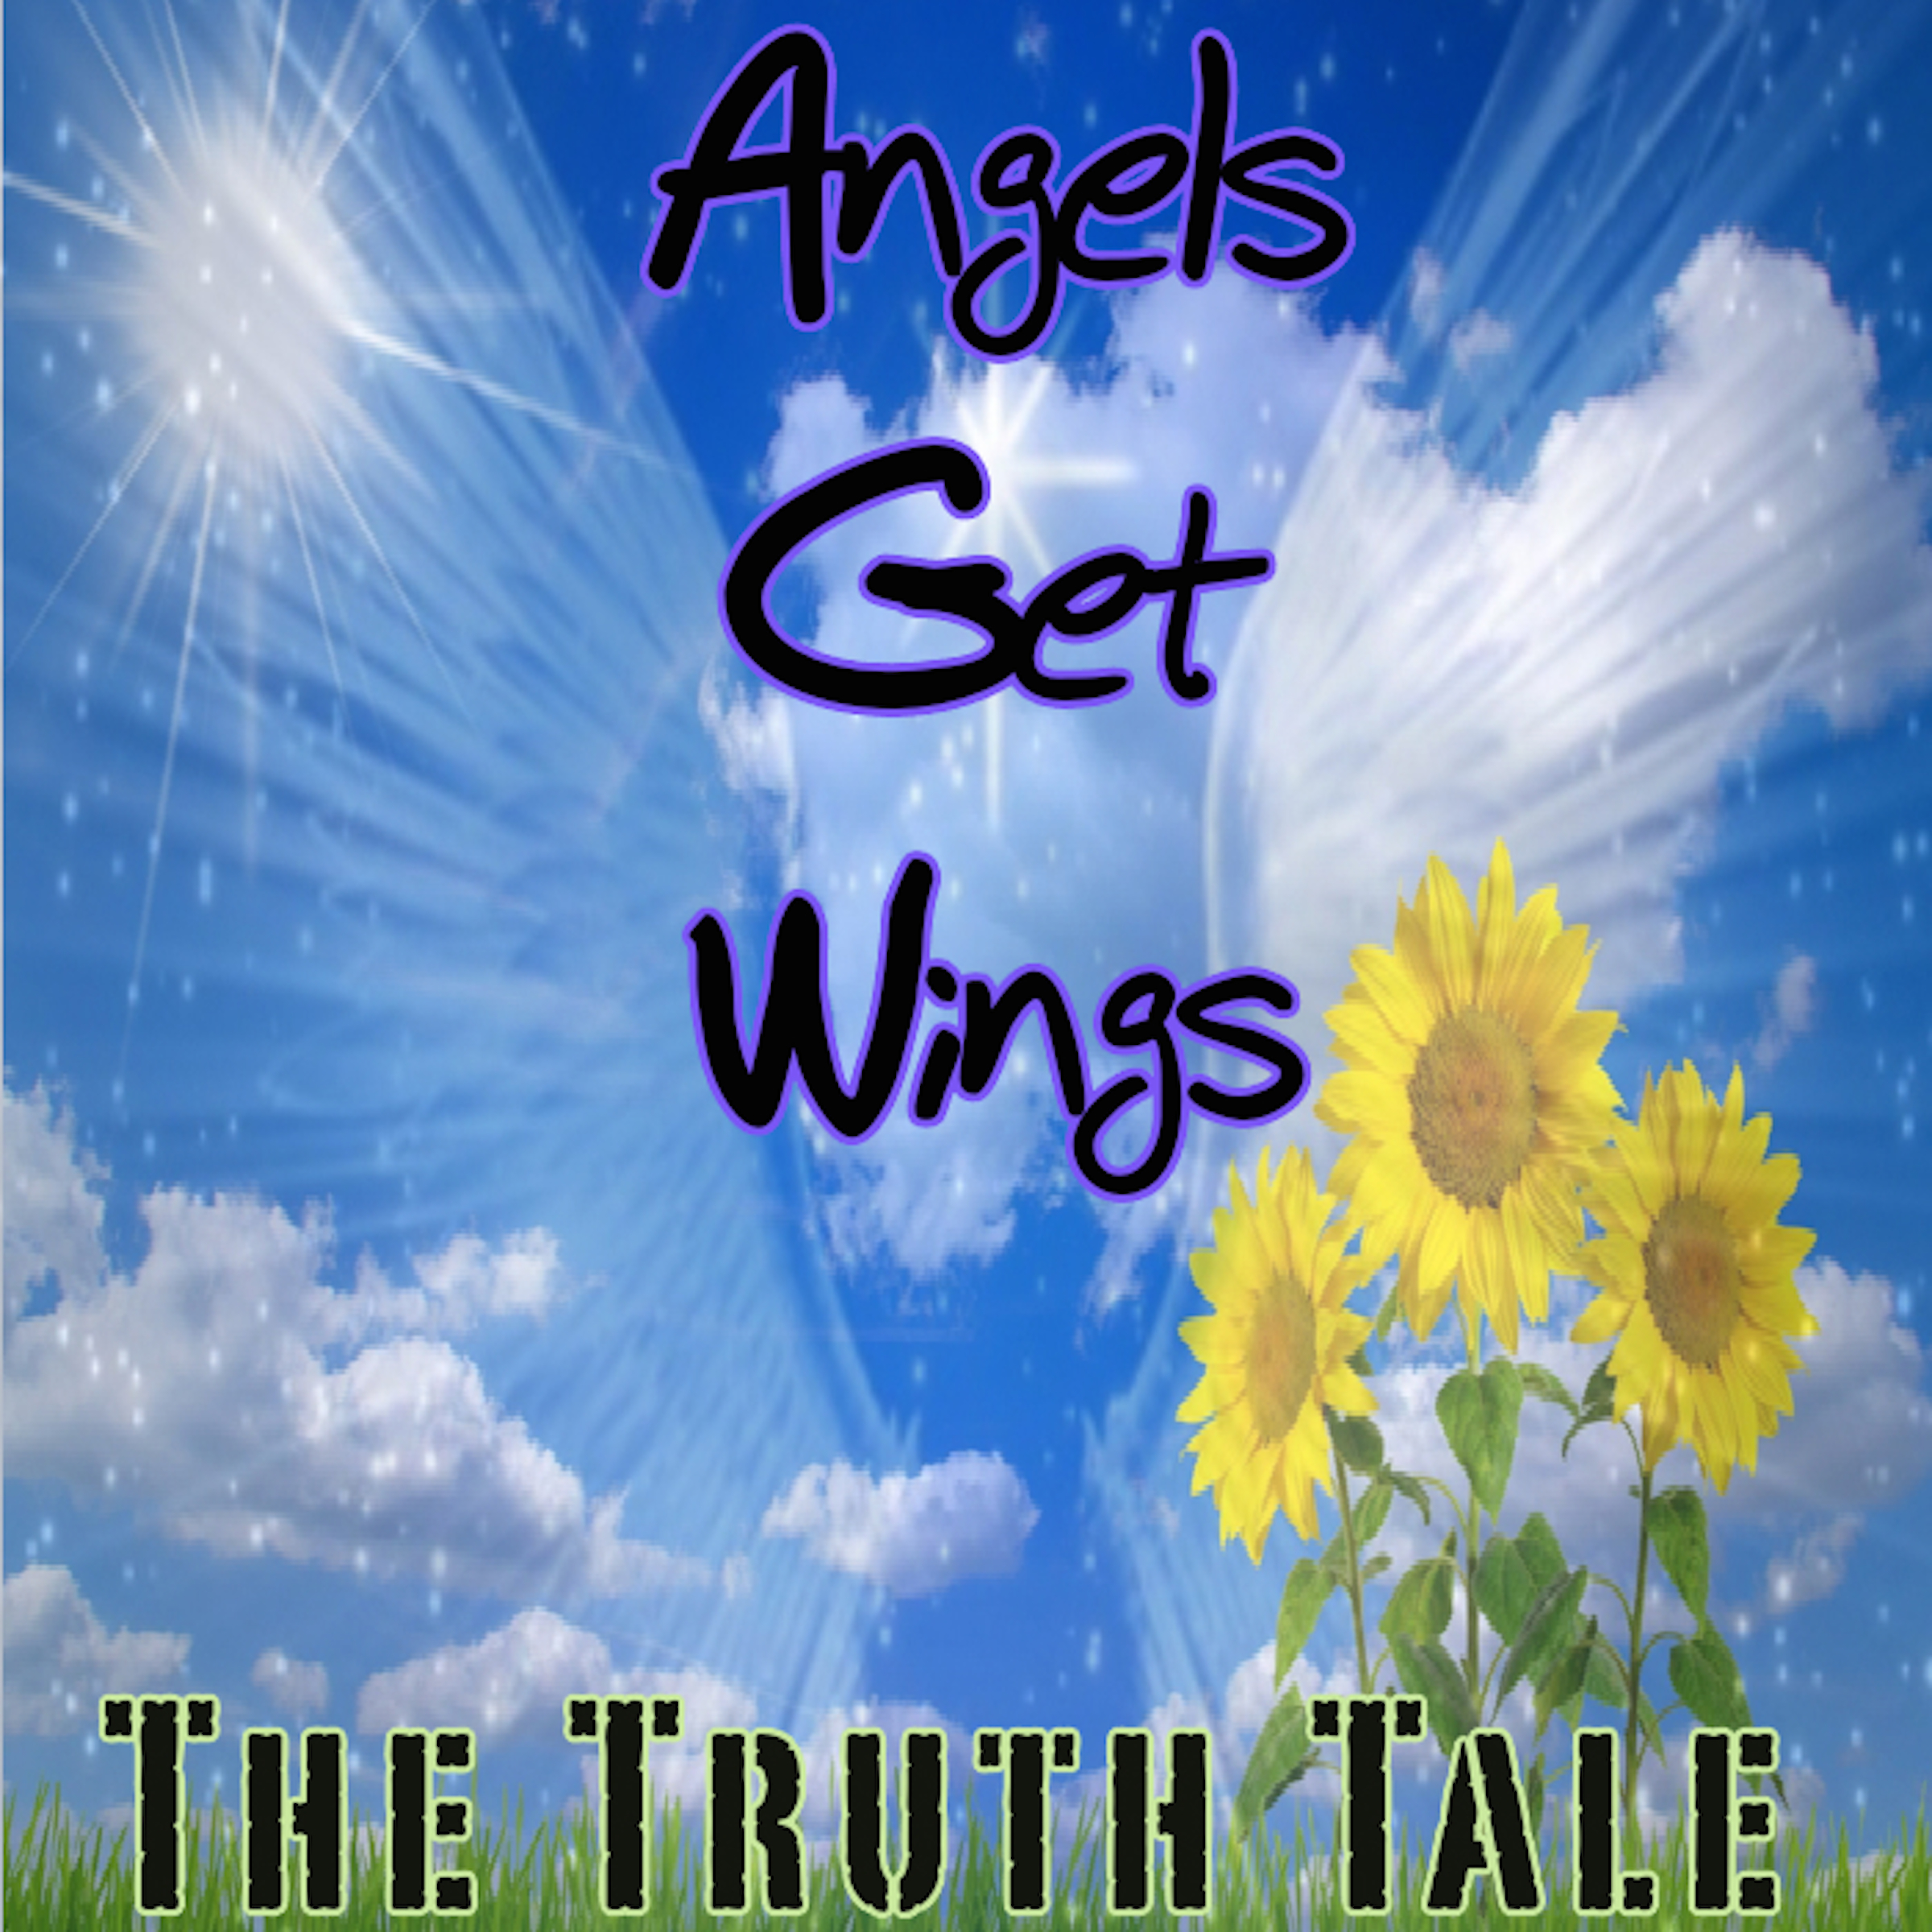 New Music Release: Angels Get Wings By The Truth Tale